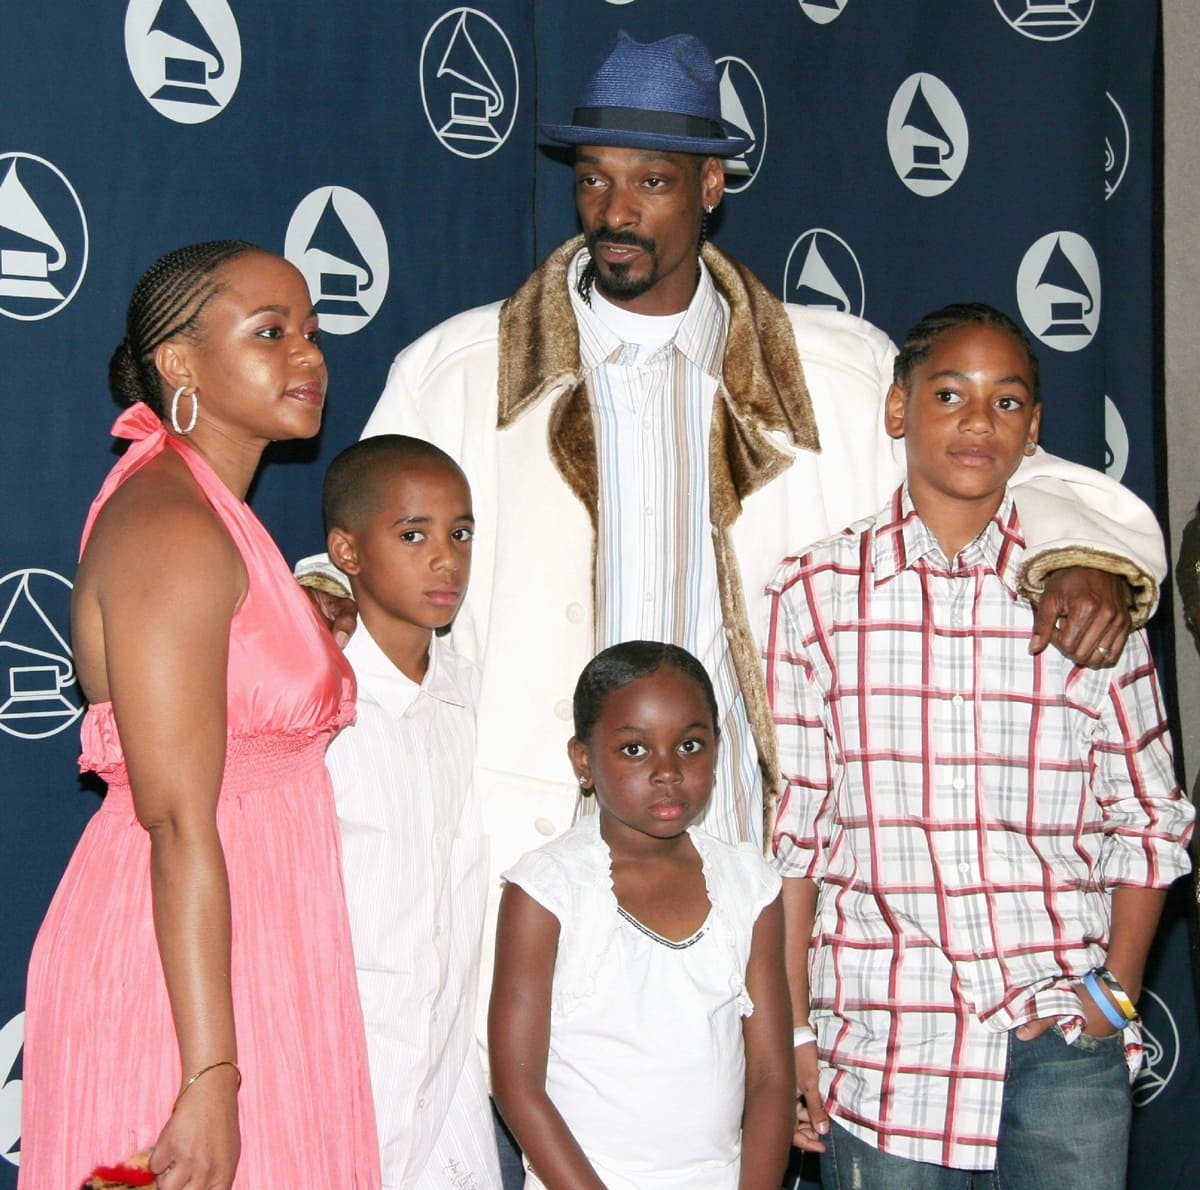 Shante Broadus and Snoop Dog with their three children Corde Broadus, Cordell Broadus, and Cori Broadus